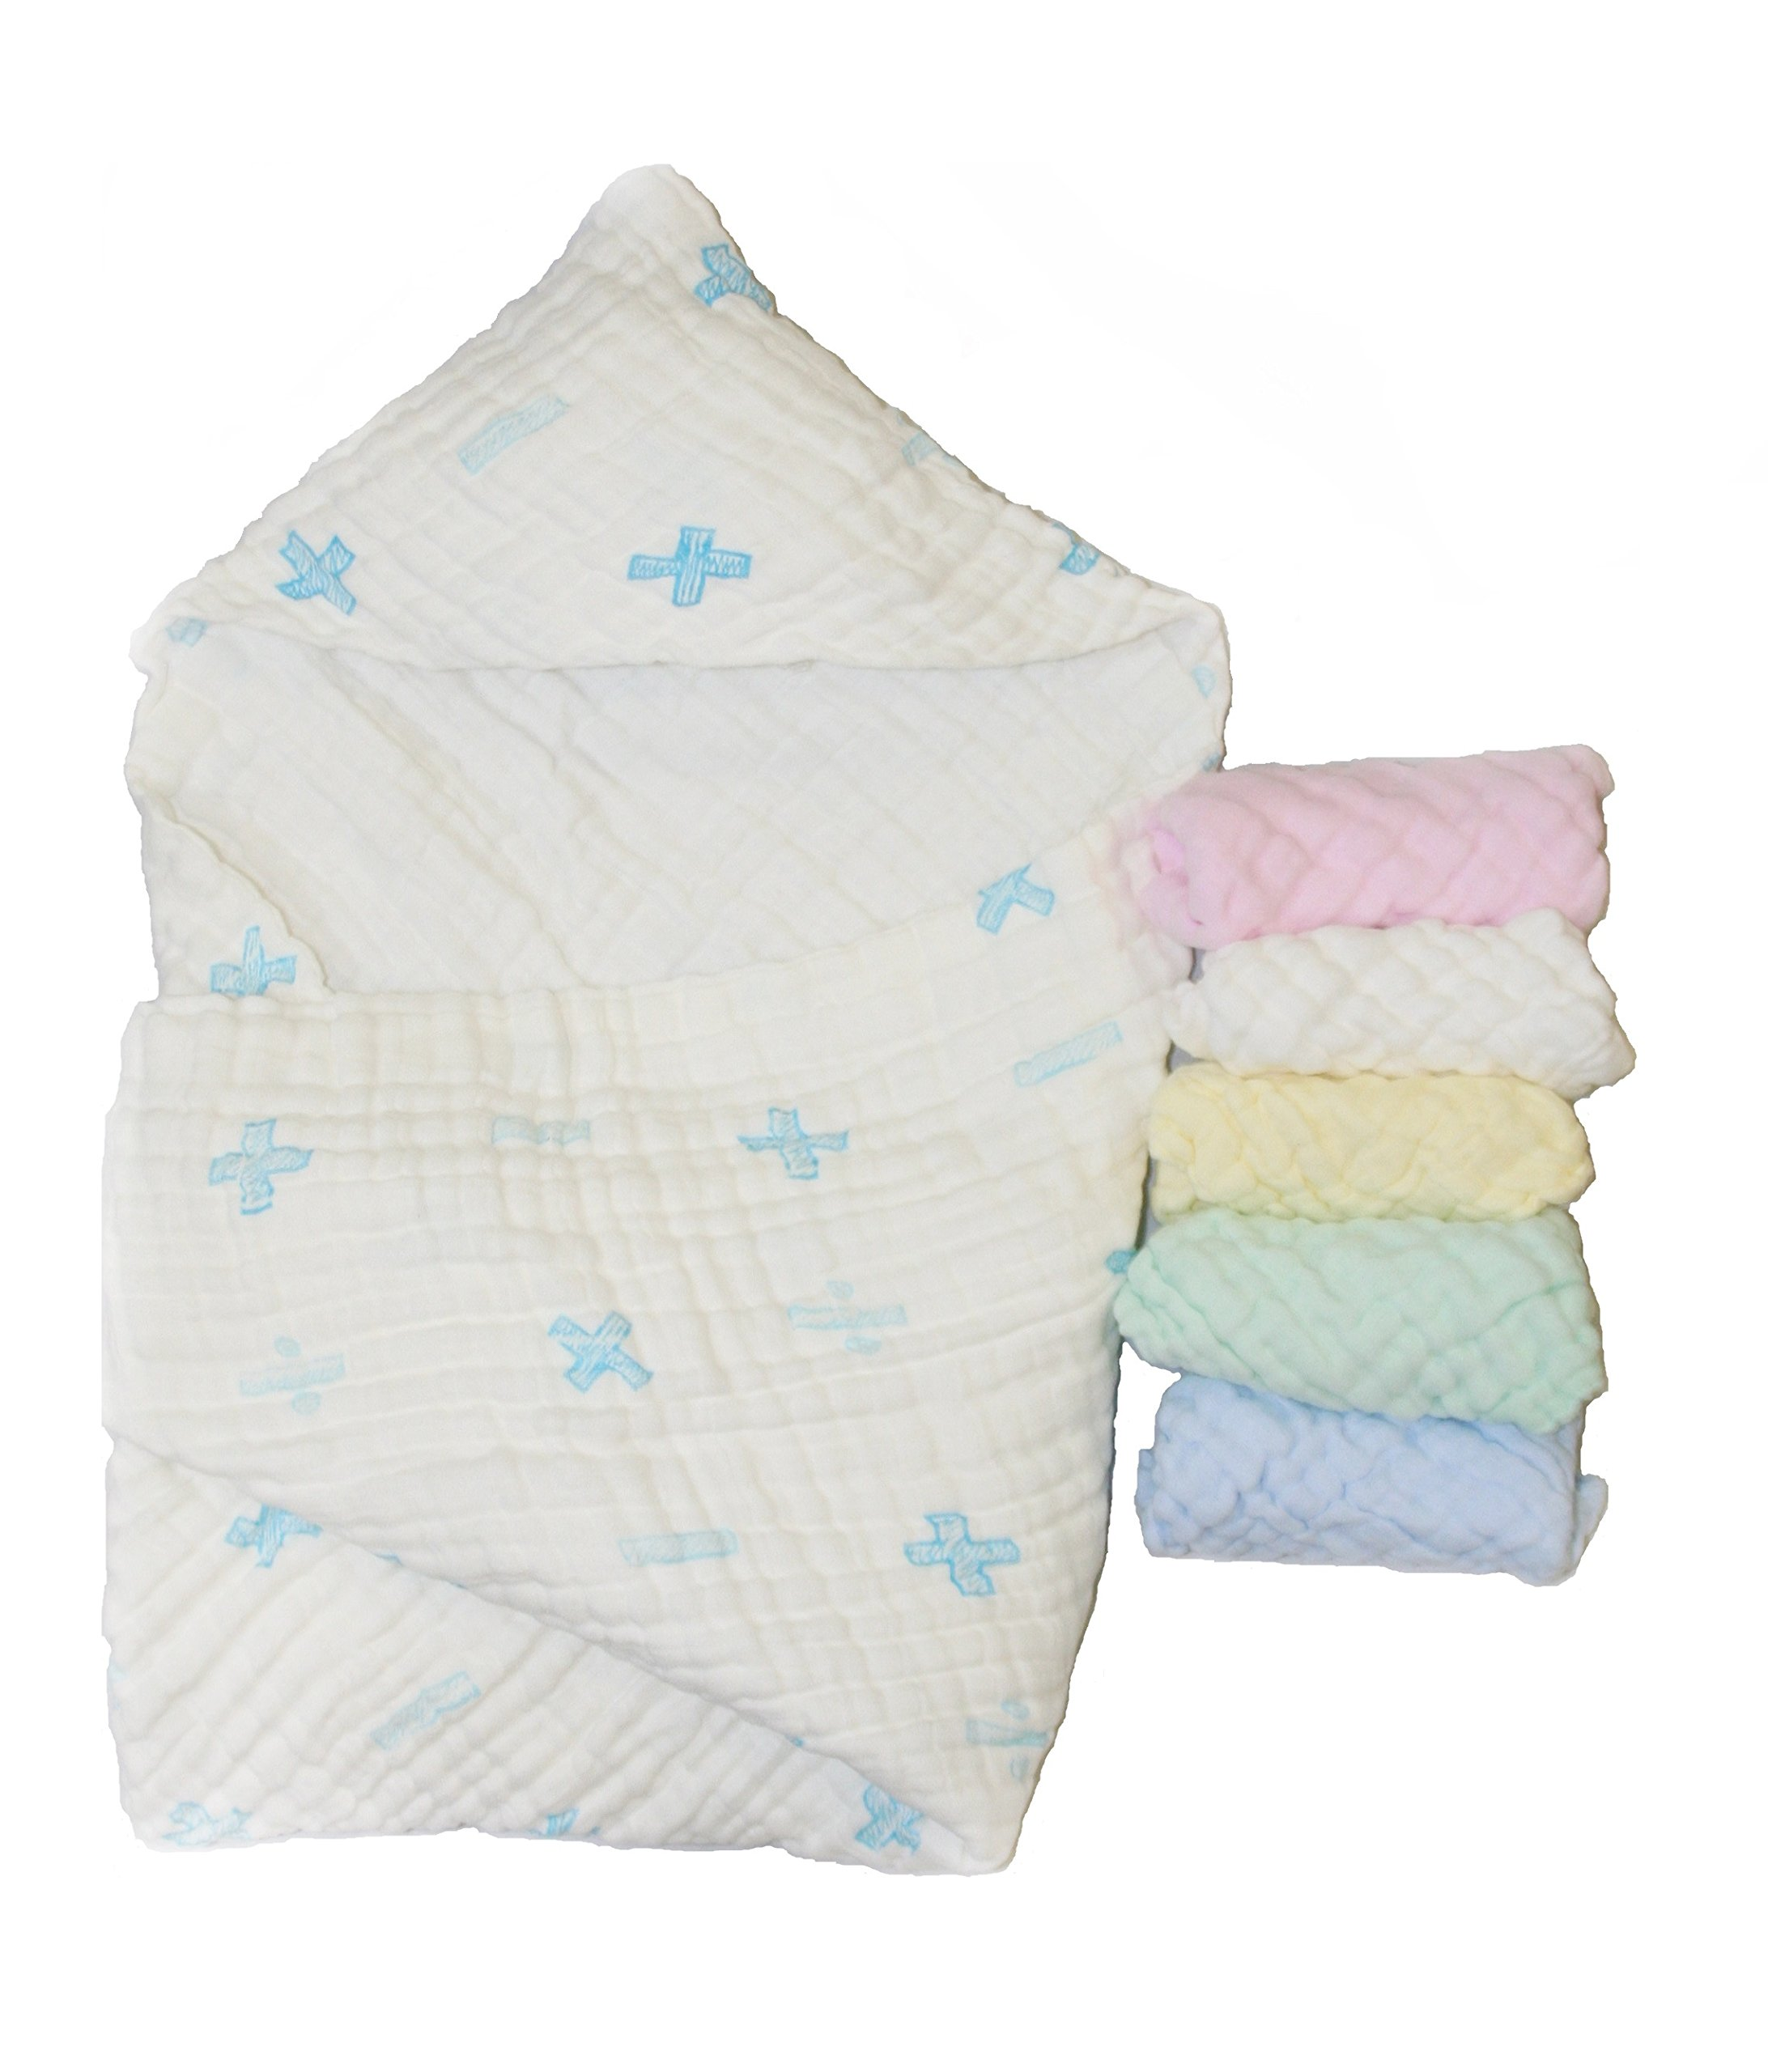 Muslin Hooded Baby Towel Bundle with Washcloths for Newborn Boy Blue Baby Shower Gift by Little Kale + Co